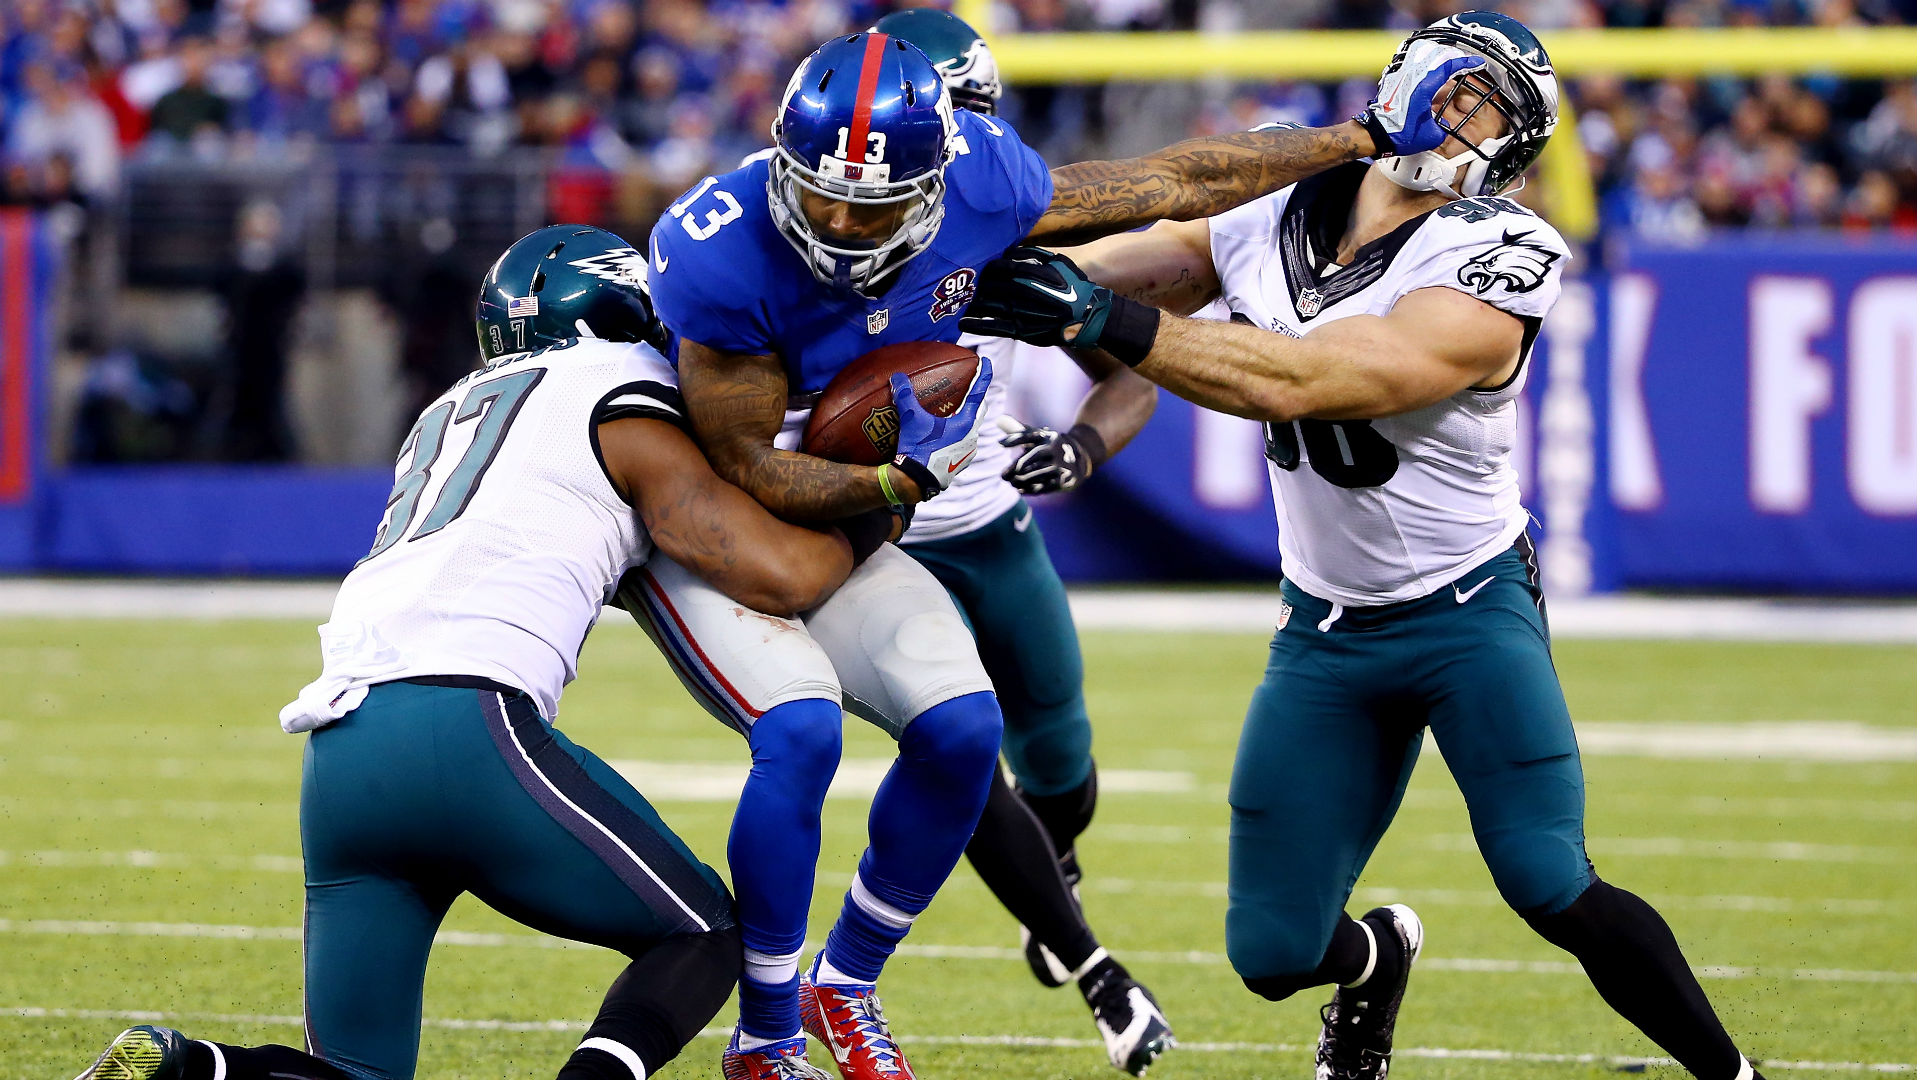 NFC East offseason betting snapshot - Giants projected to reverse course